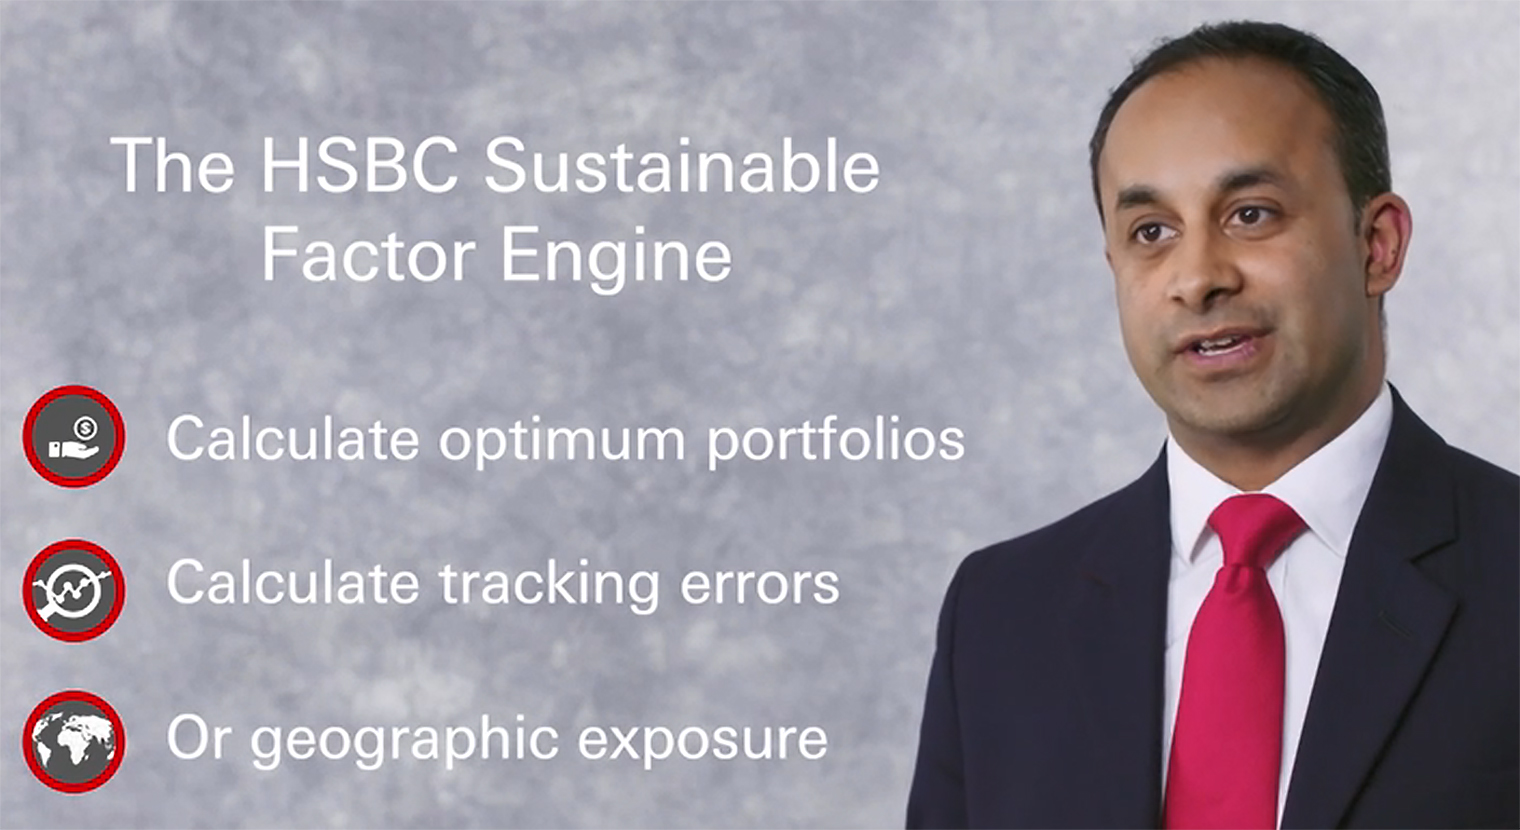 The HSBC Sustainable Factor Engine